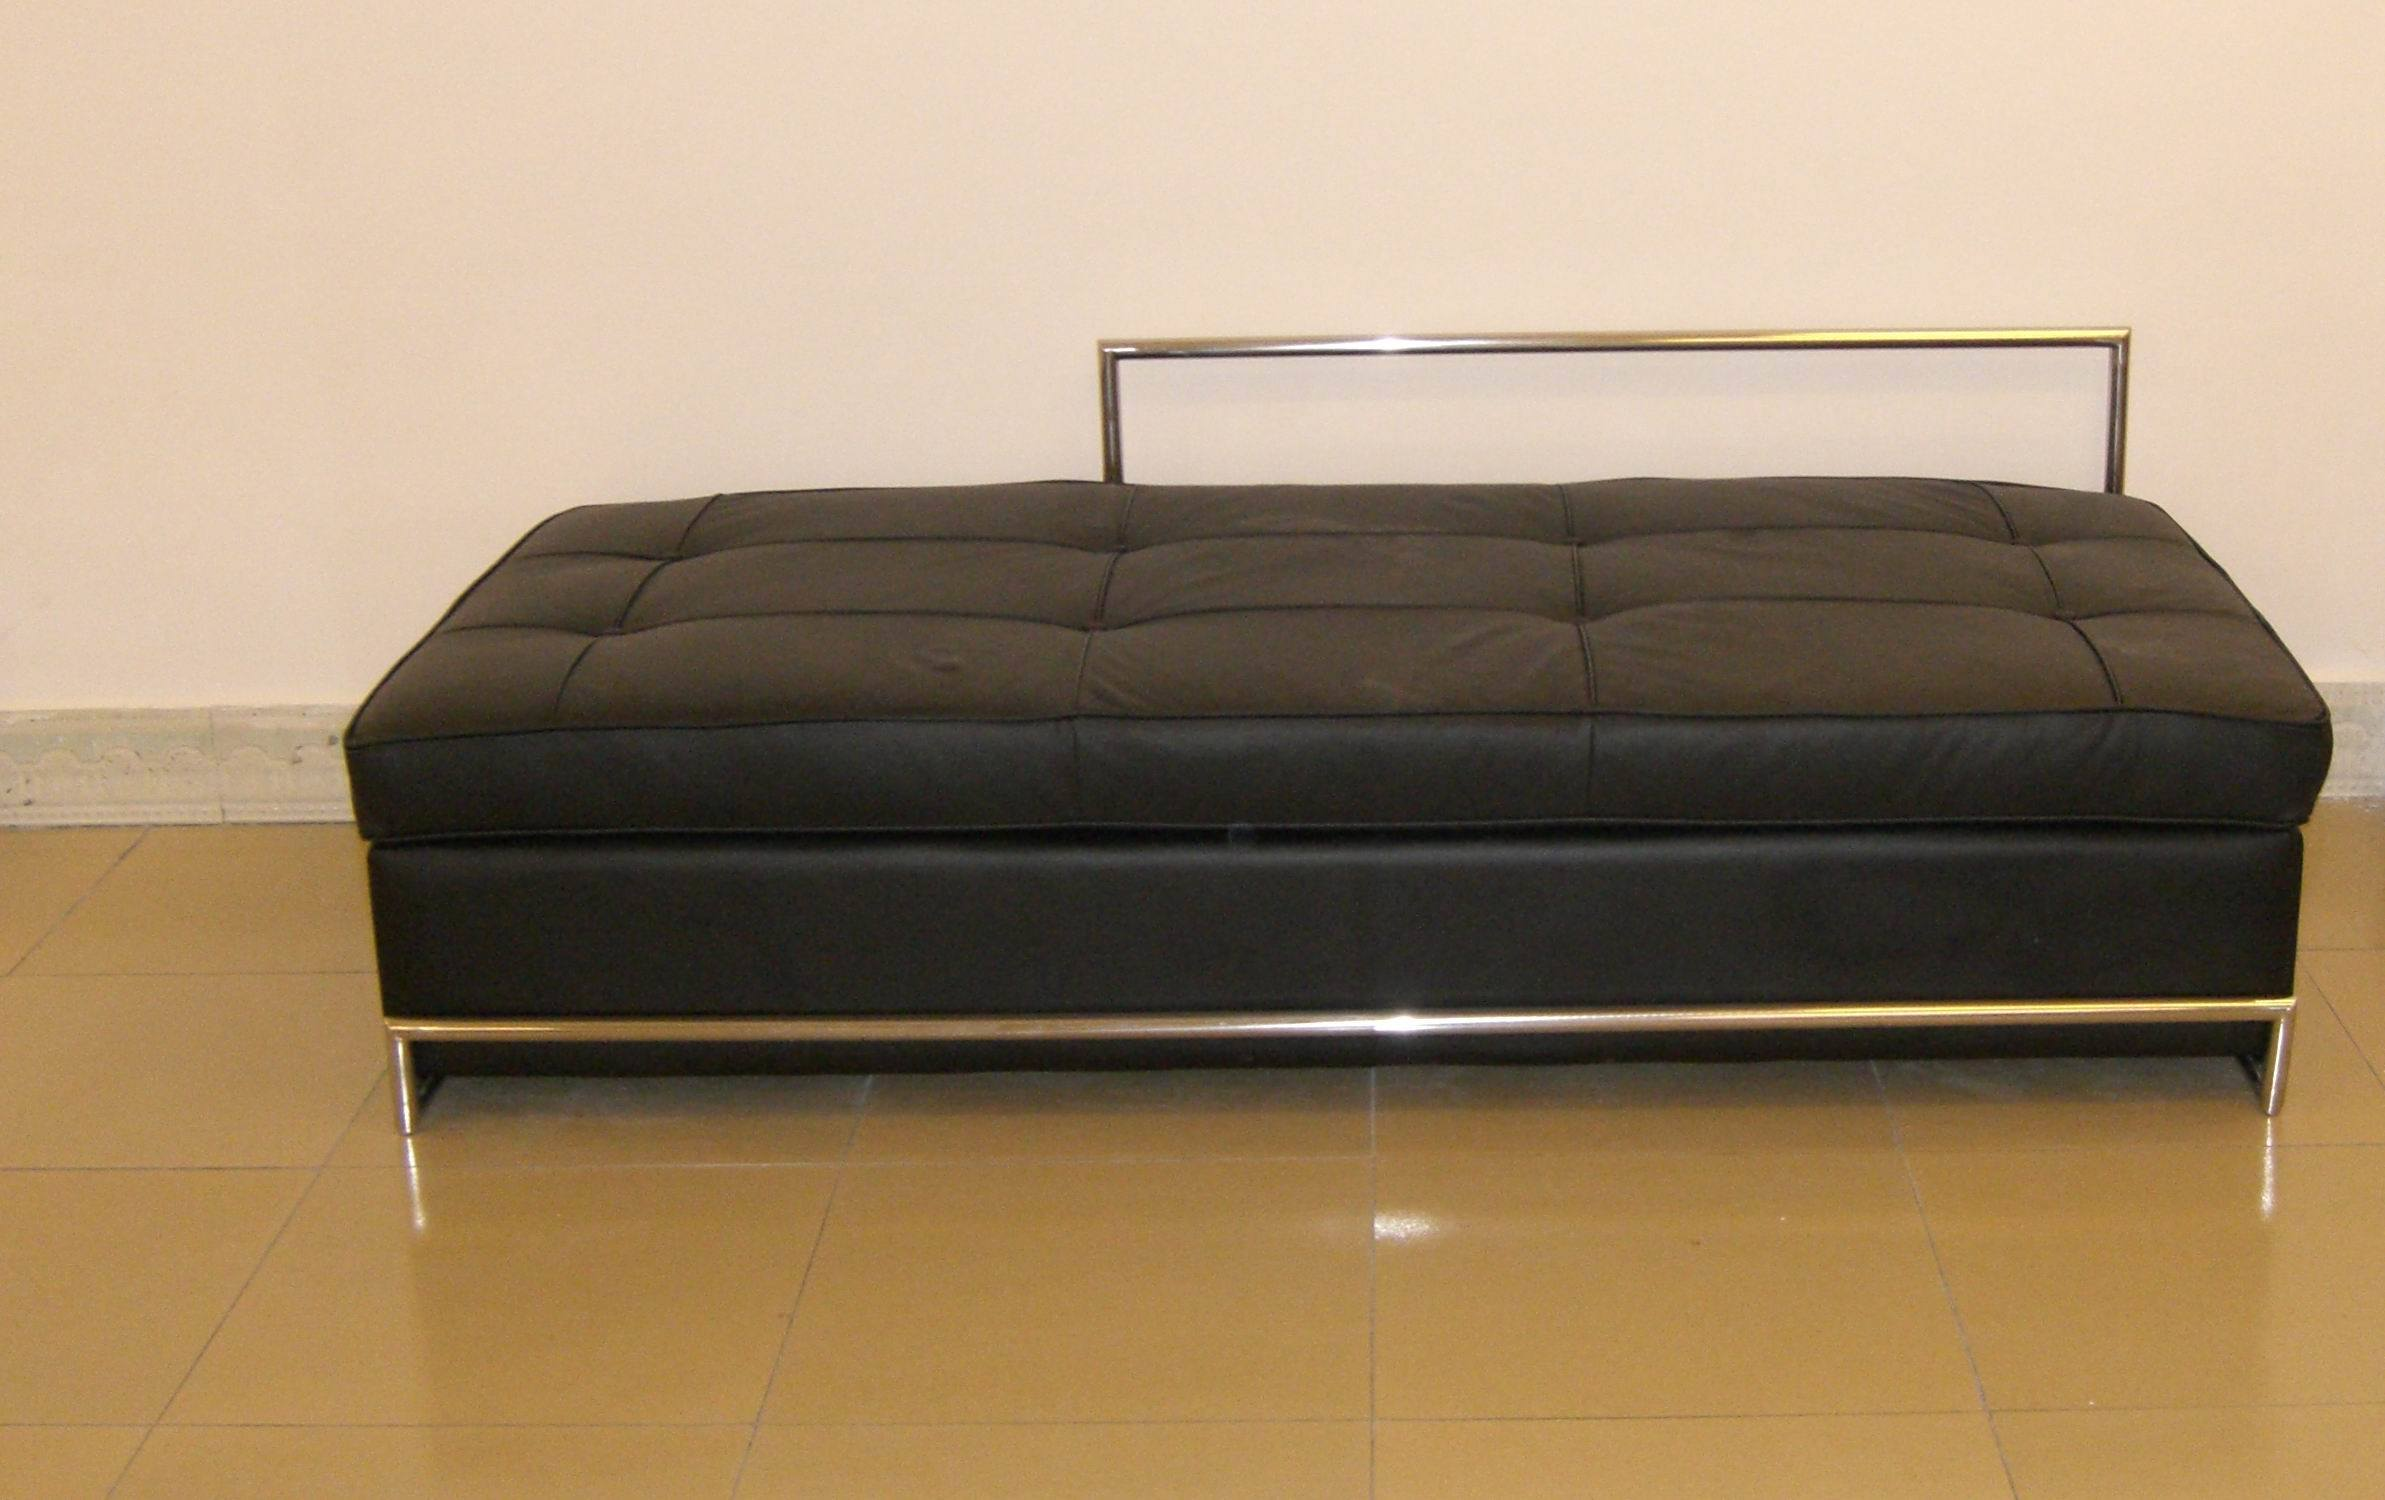 china sofa bed eileen gray daybed s014 photos pictures made in. Black Bedroom Furniture Sets. Home Design Ideas